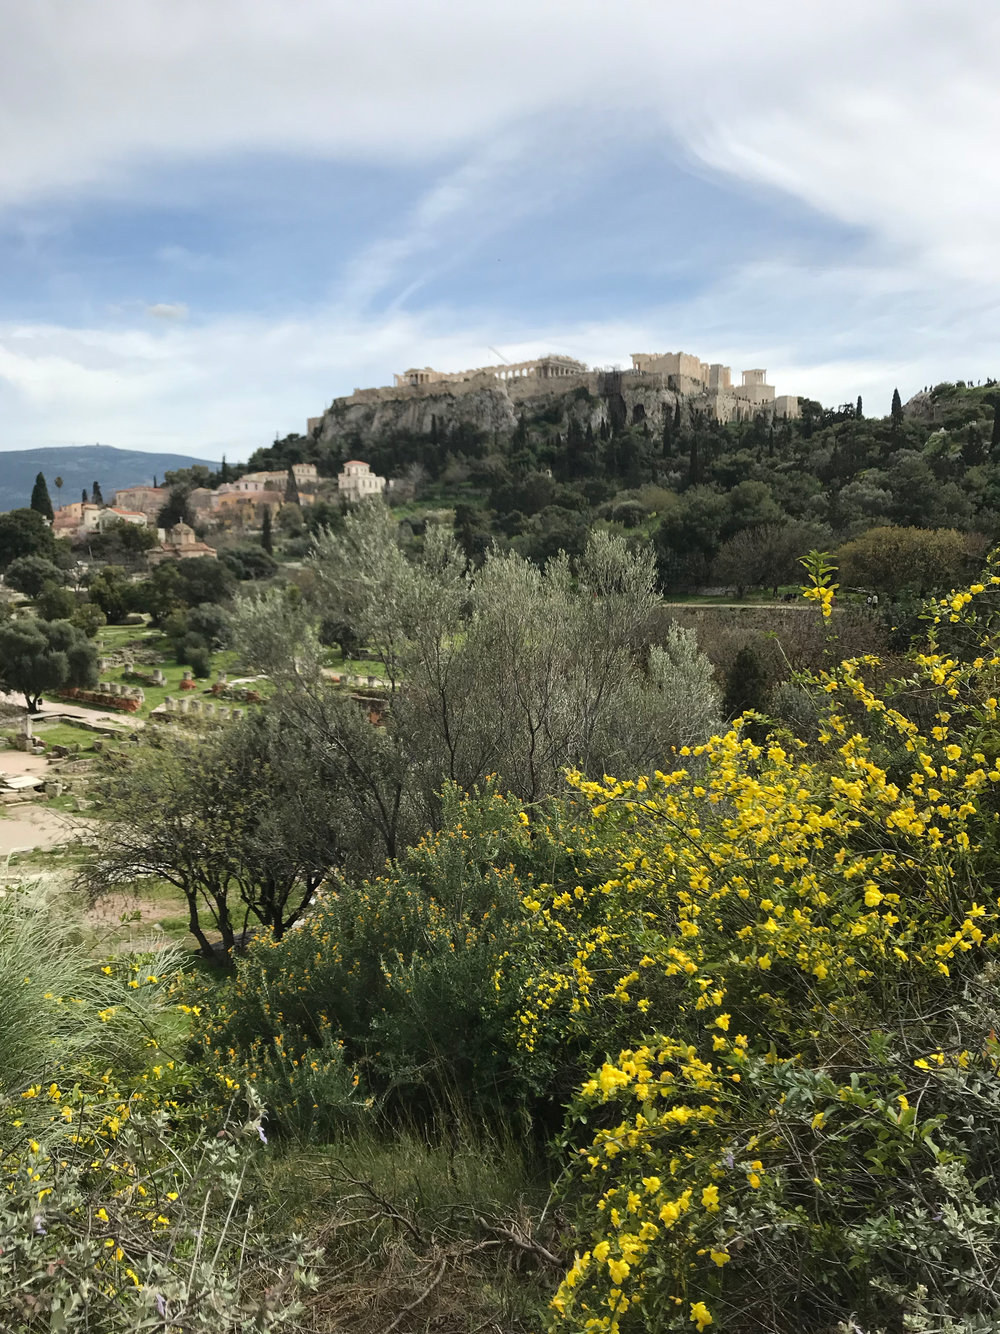 A view of the Acropolis from the Ancient Agora site